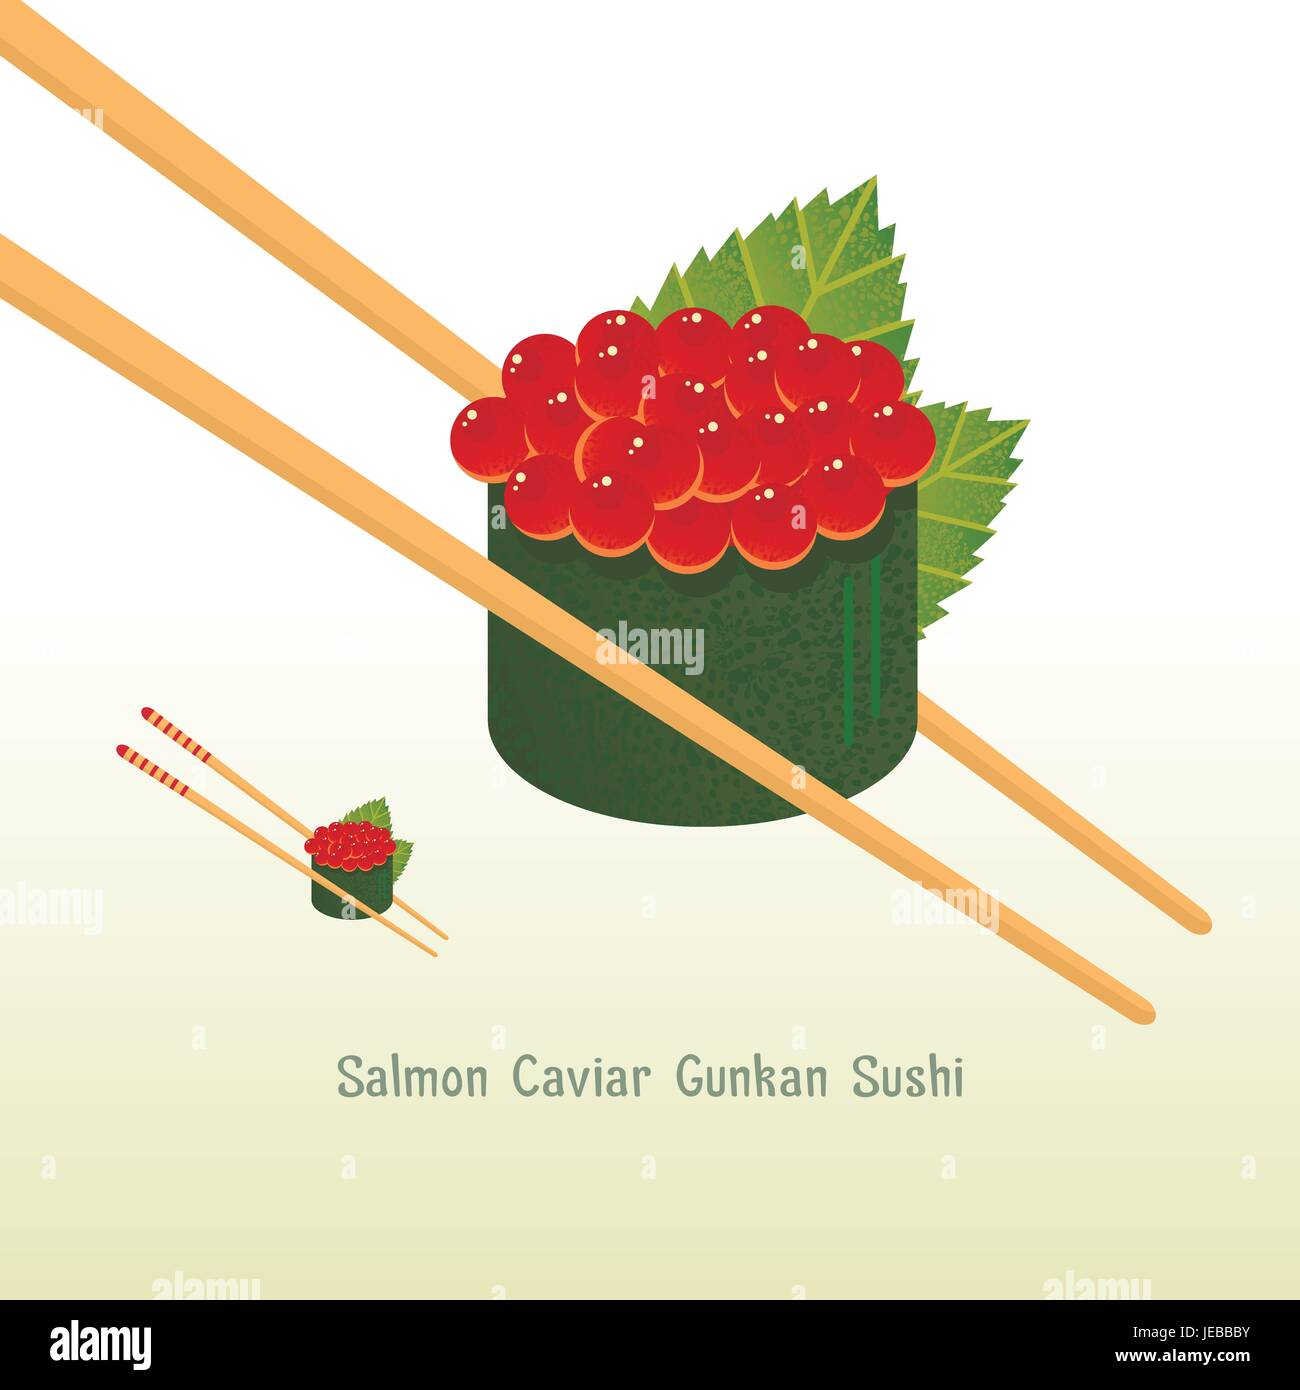 Red Caviar Gunkan Sushi vector illustration. All objects are conveniently grouped and easily editable. - Stock Vector